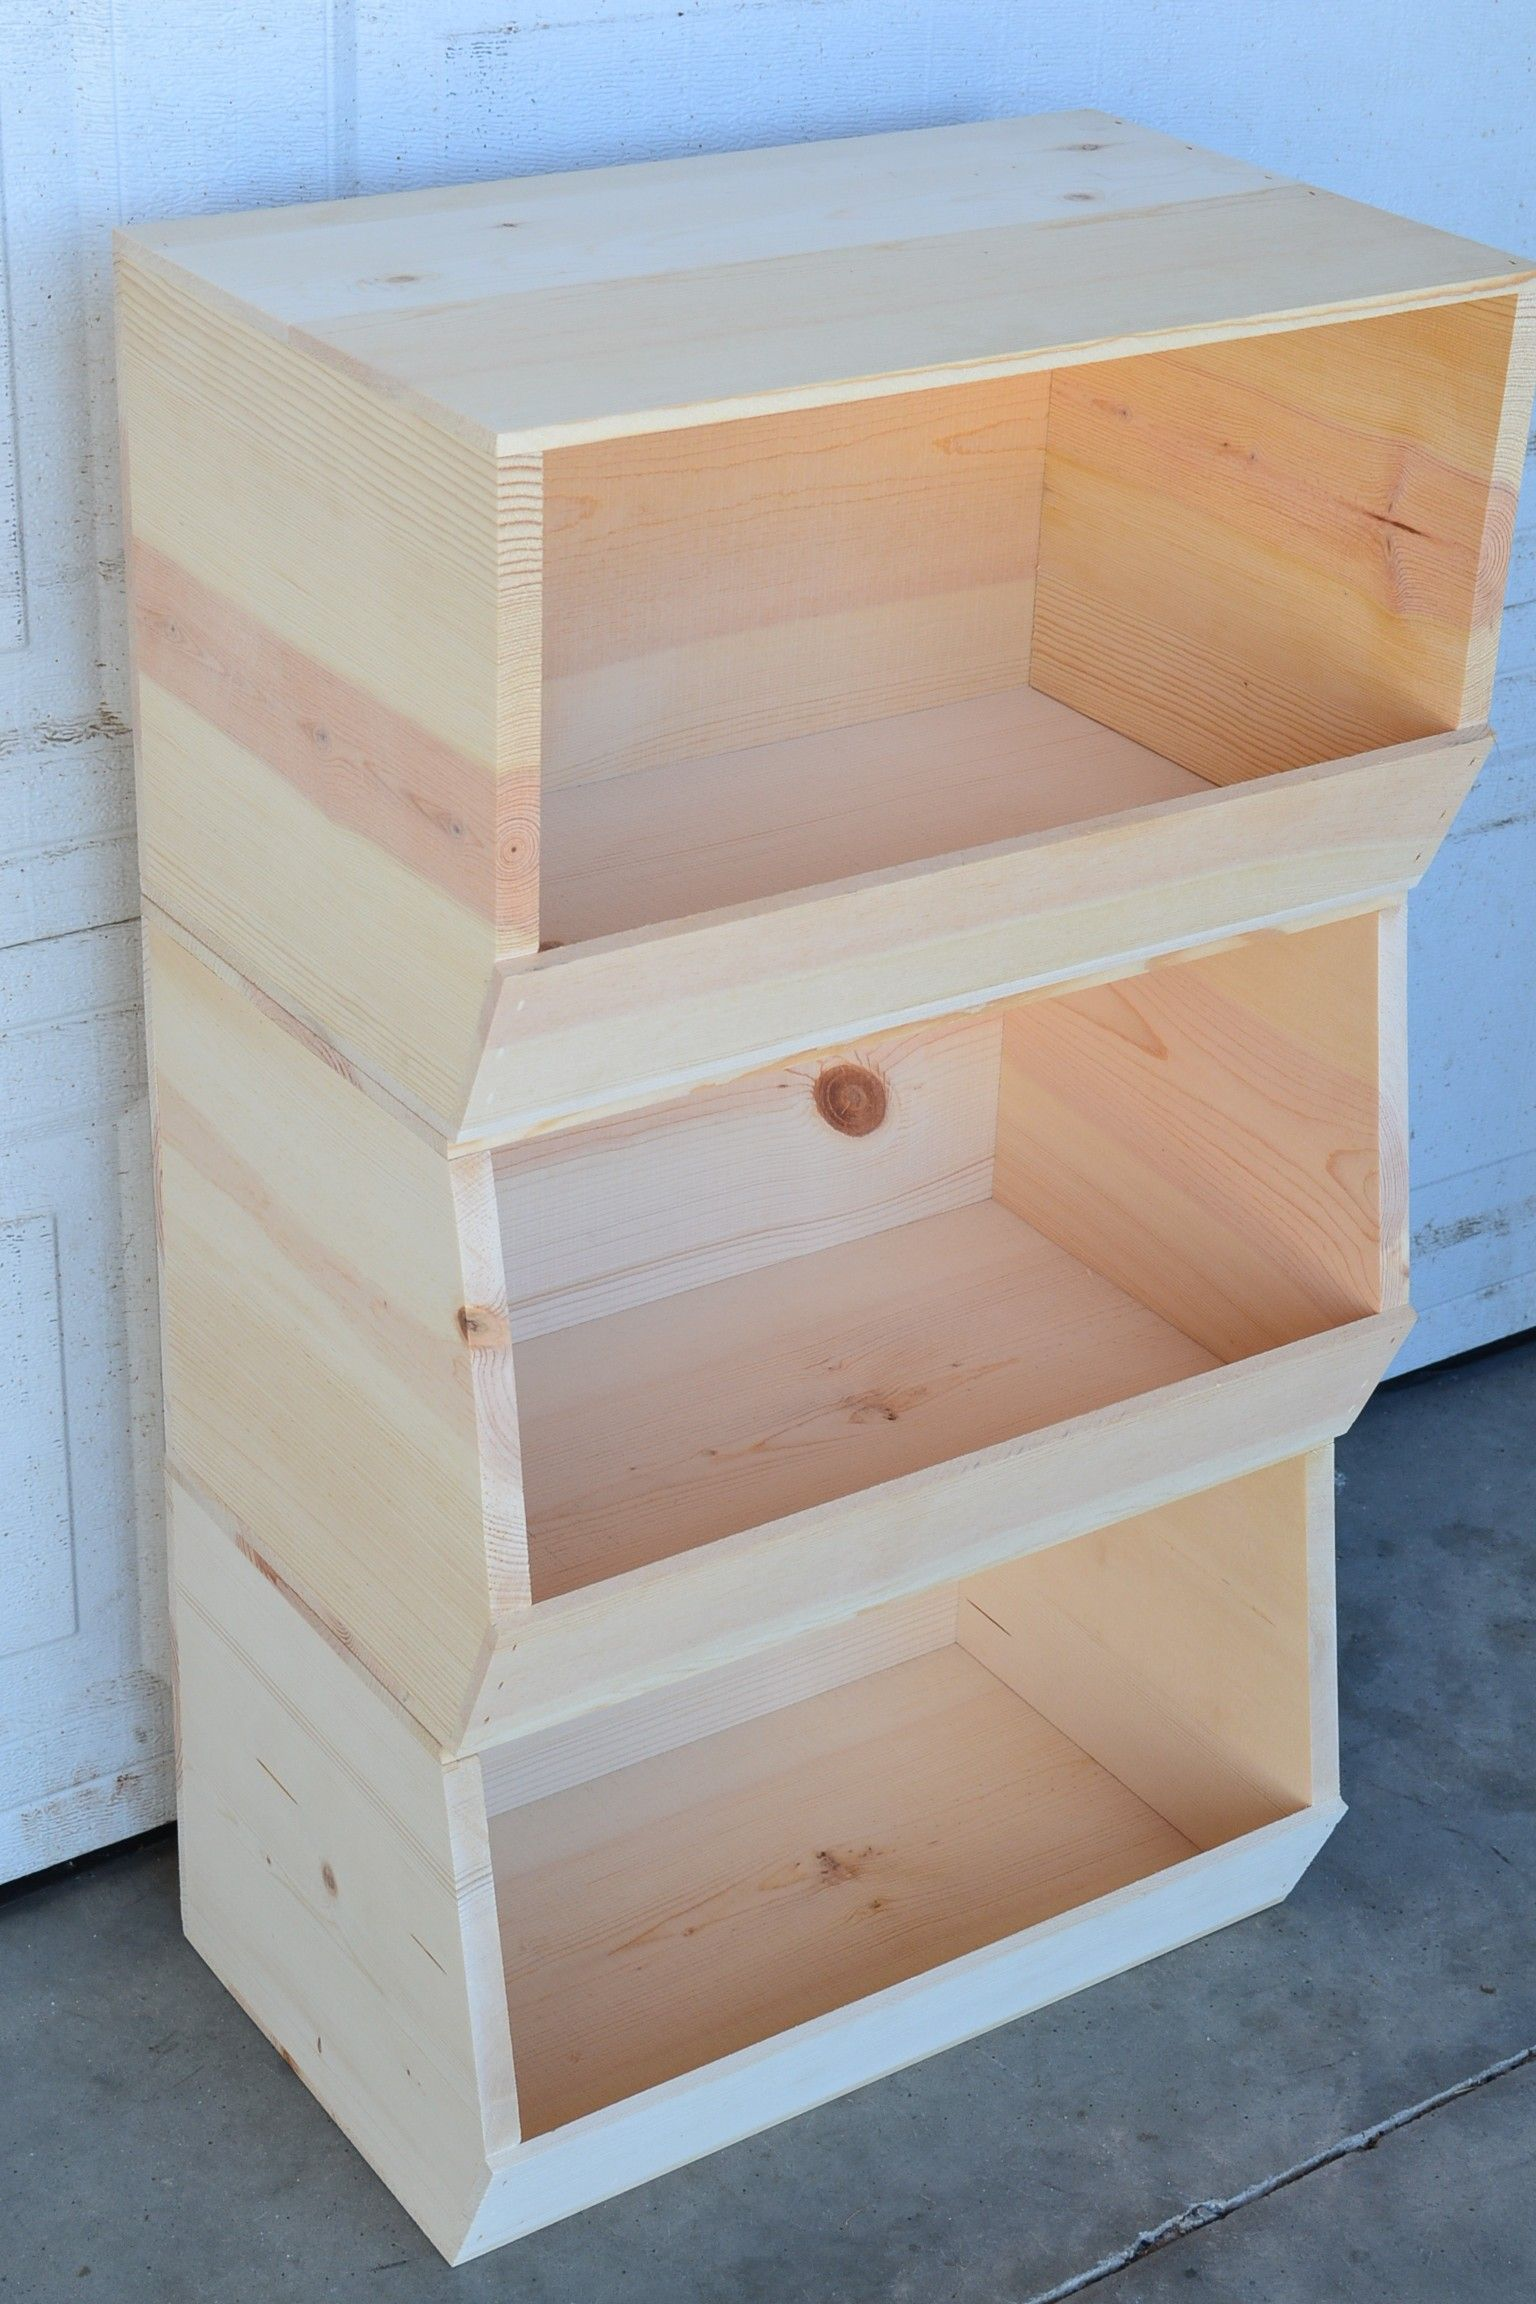 Stackable Storage Bin Poole Sons Inc Stackable Storage Bins Stackable Storage Wooden Storage Bins